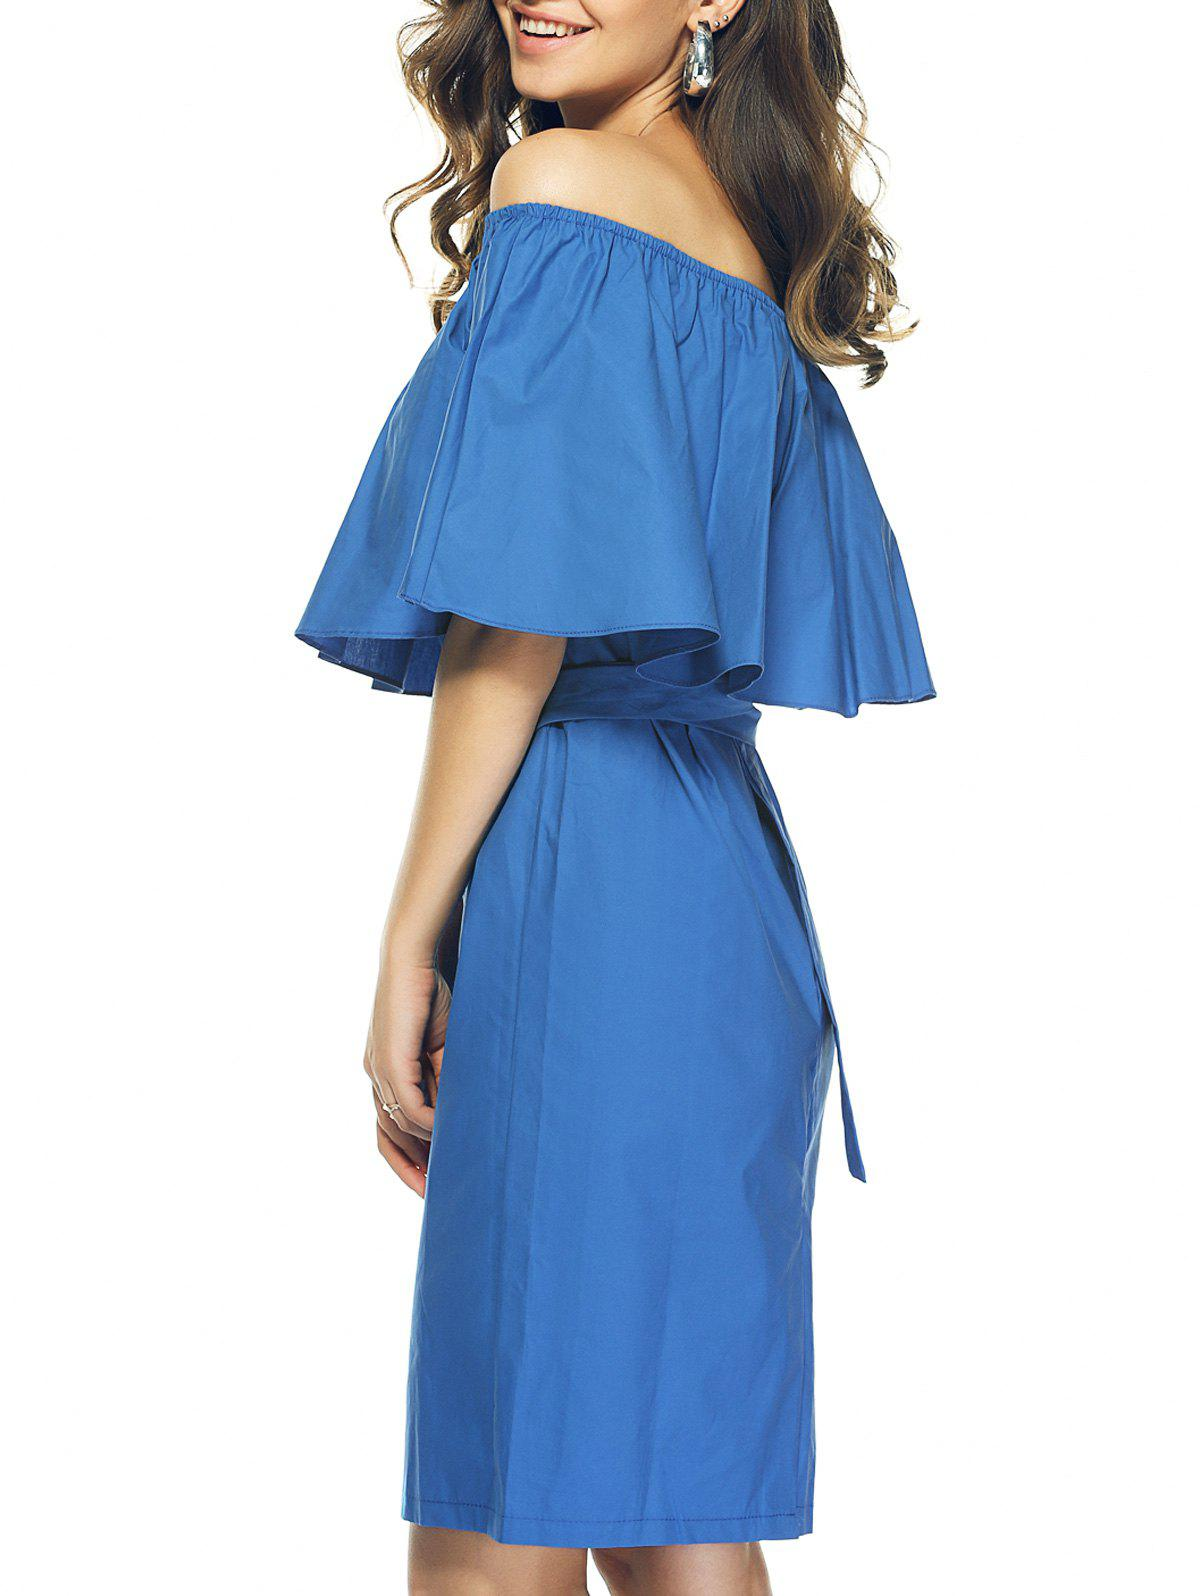 Cute Off The Shoulder Flounced Slimming Multiway Dress